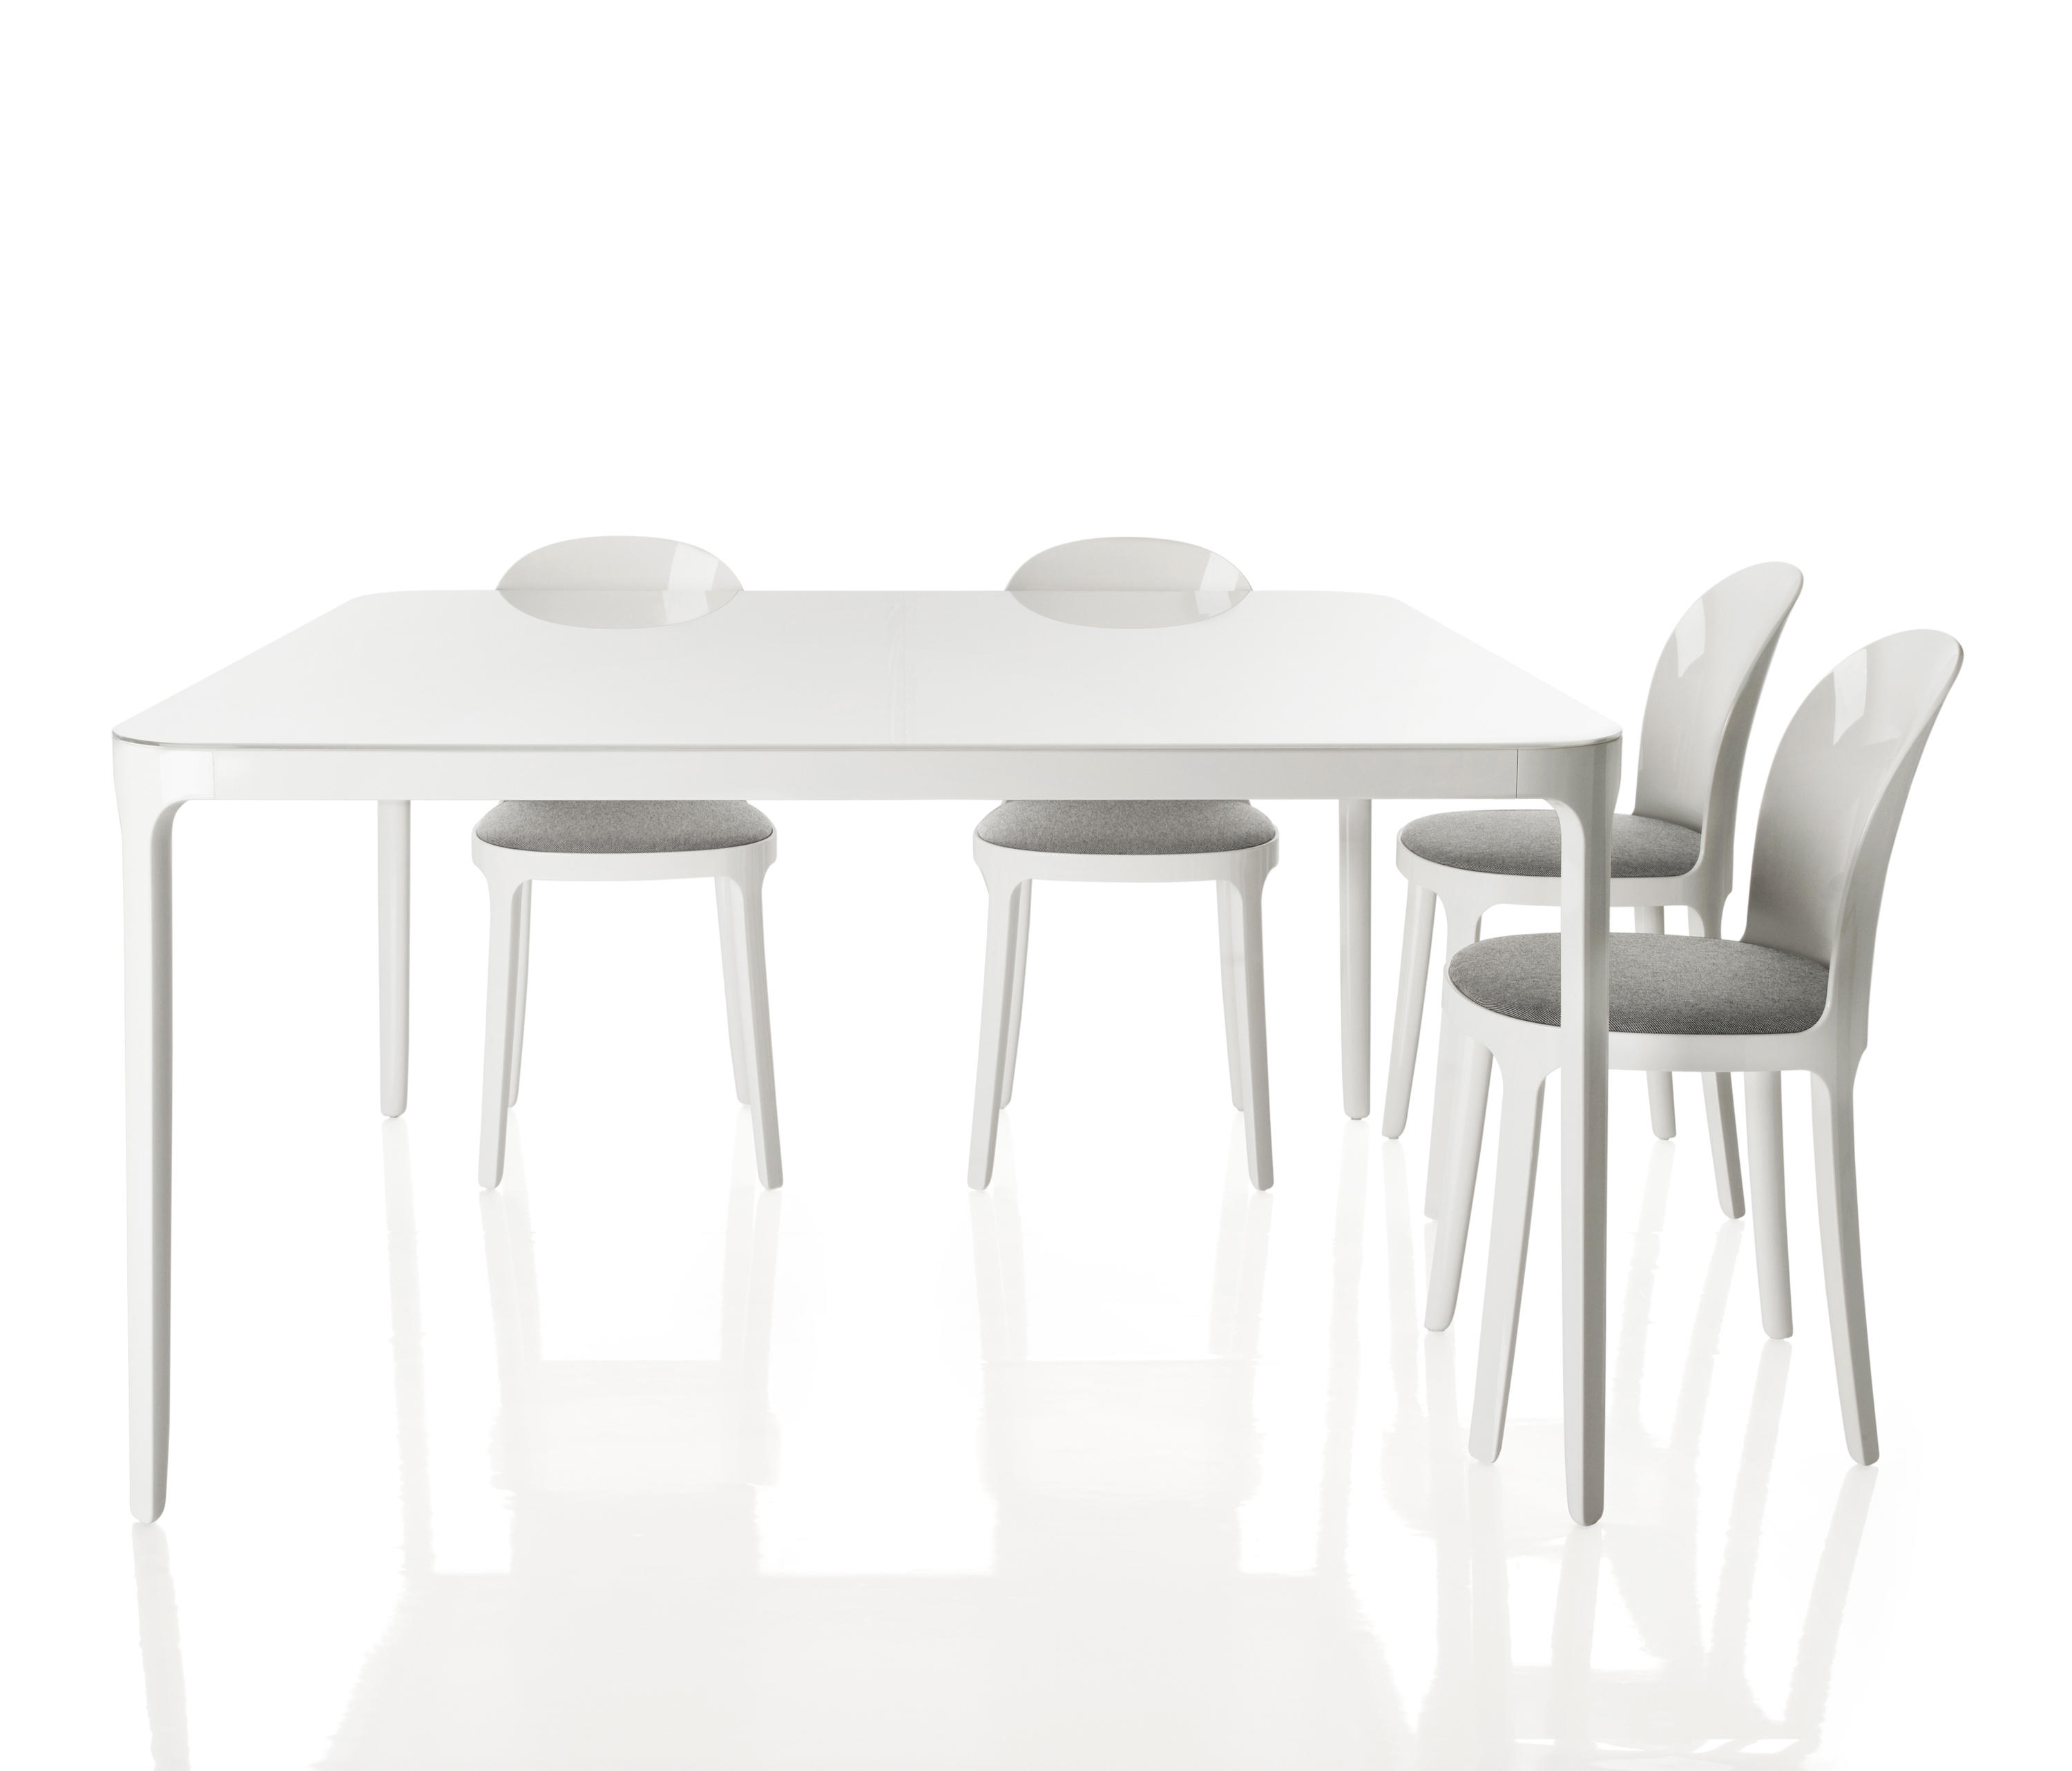 Vanity chair visitors chairs side chairs from magis for Table salle a manger carree blanche